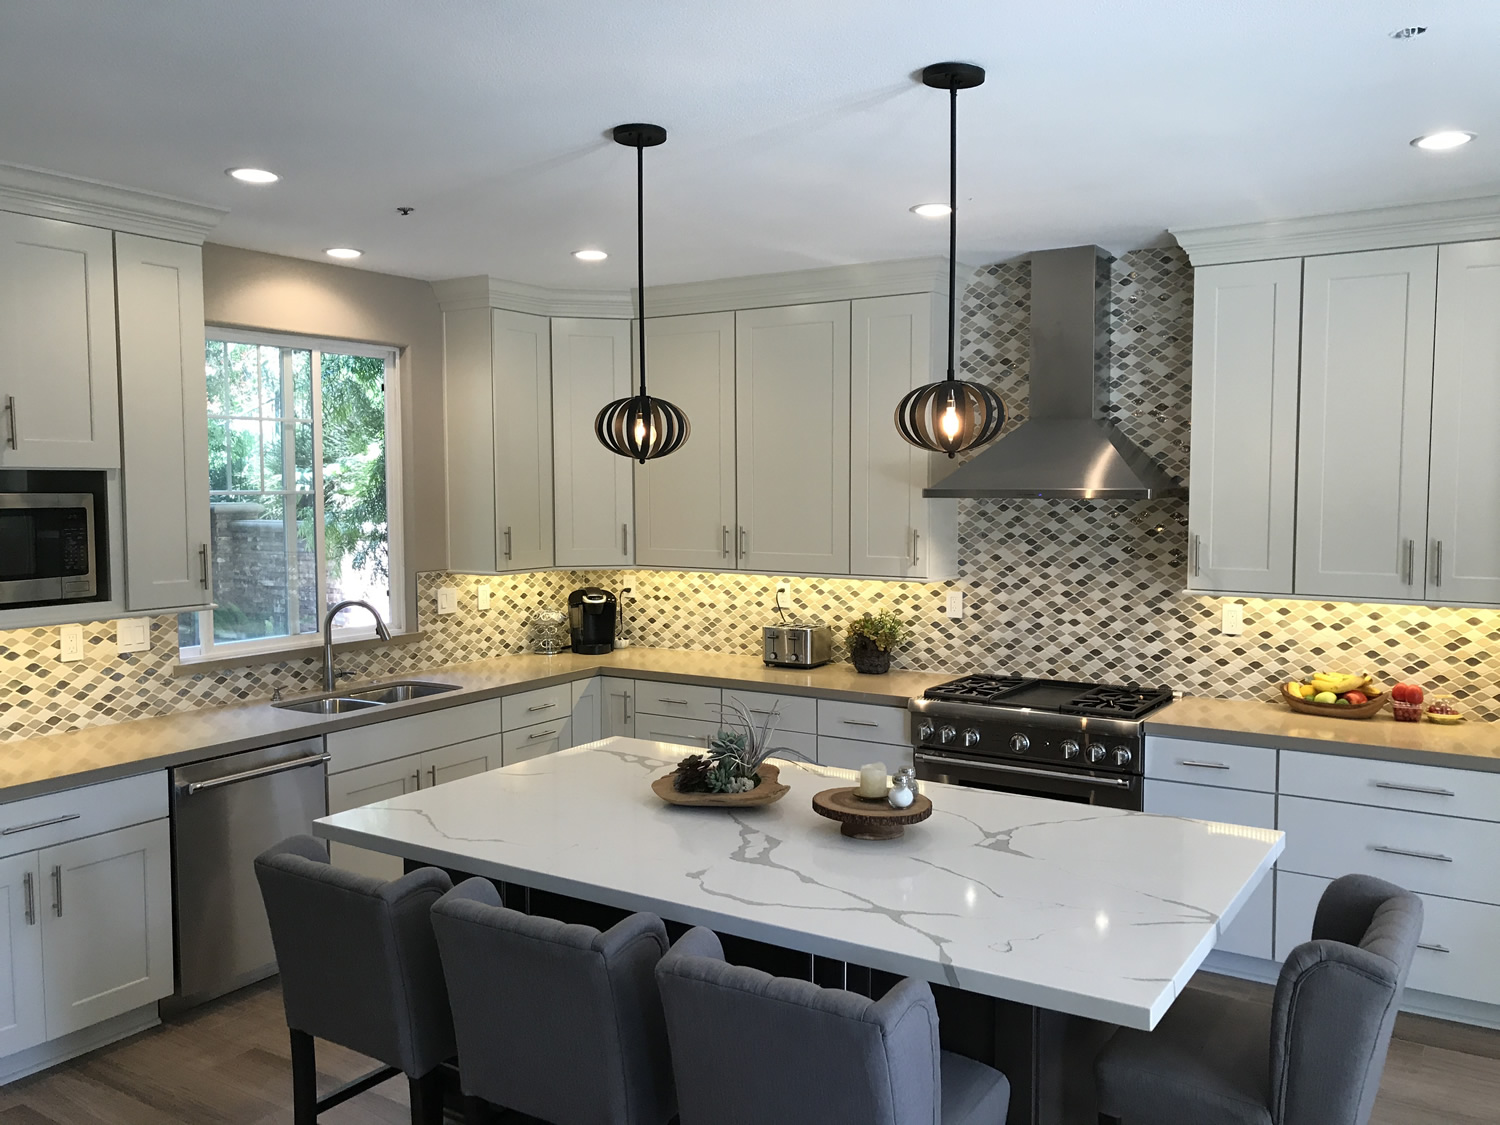 Mixing Dark Stained And Light Painted Finishes On The Cabinetry, Unique  Quartz Colors, Mosaic Backsplash And Rich Woodlook Porcelain Tile Floors A  Space Was ...